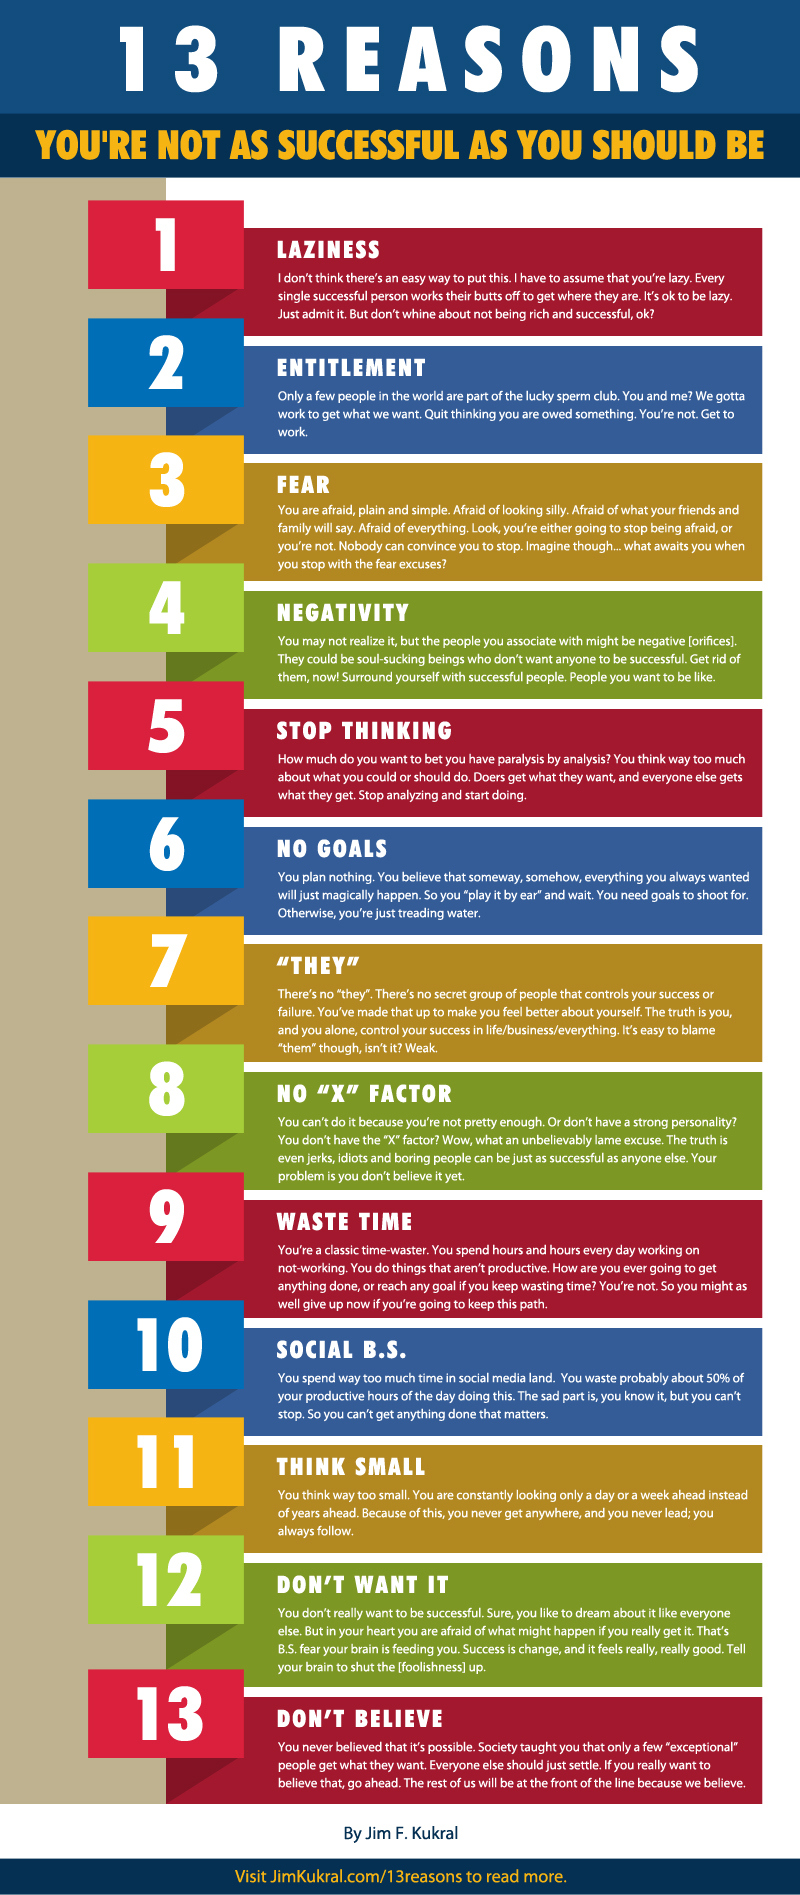 13 reasons why you might not be successful1 13 Reasons Youre Not Successful [Infographic]